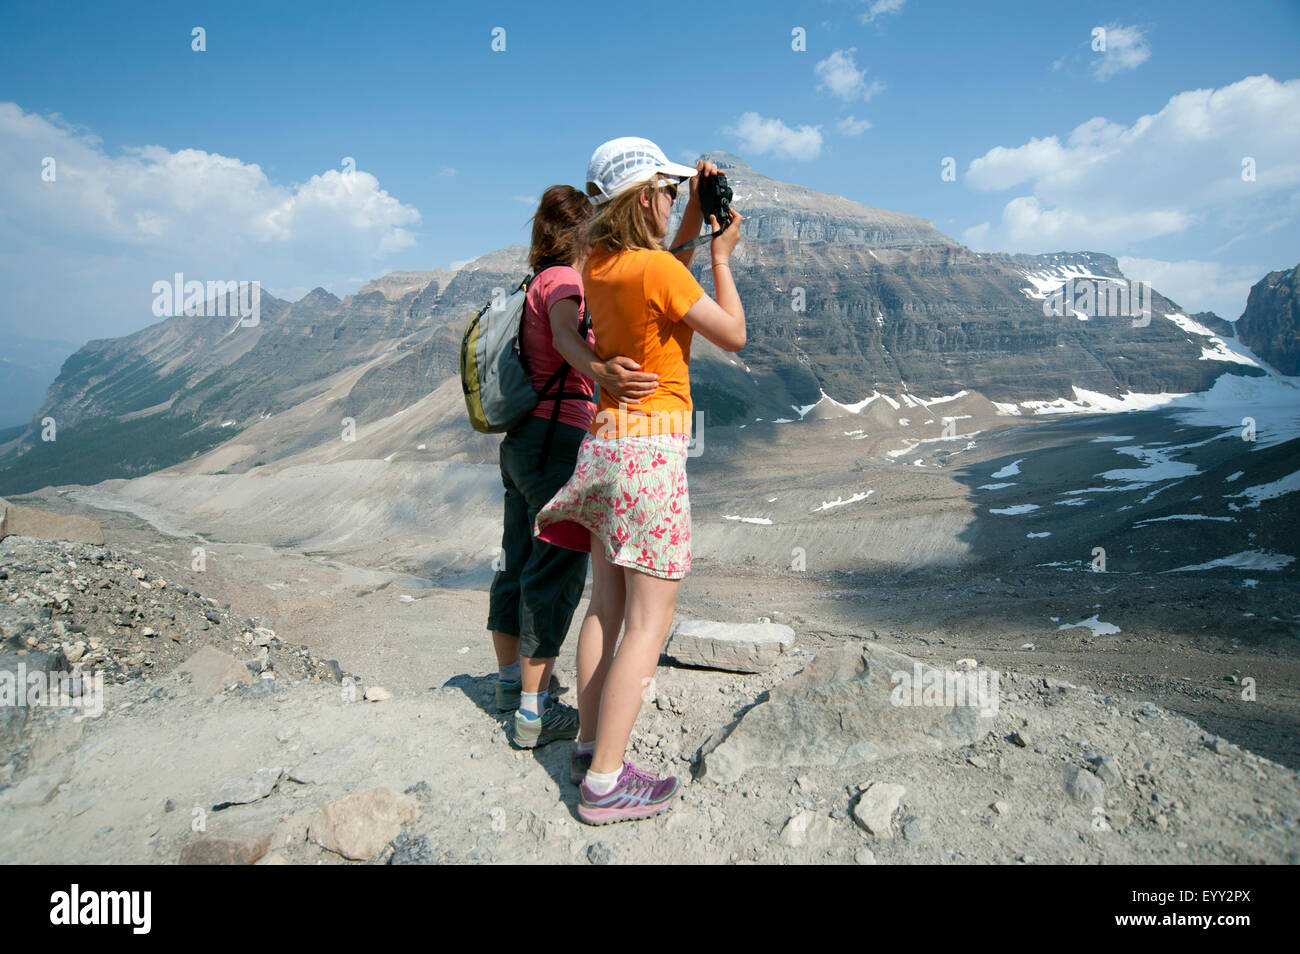 Caucasian mother and daughter photographing scenic view of Six Glaciers Trail, Banff, Alberta, Canada - Stock Image